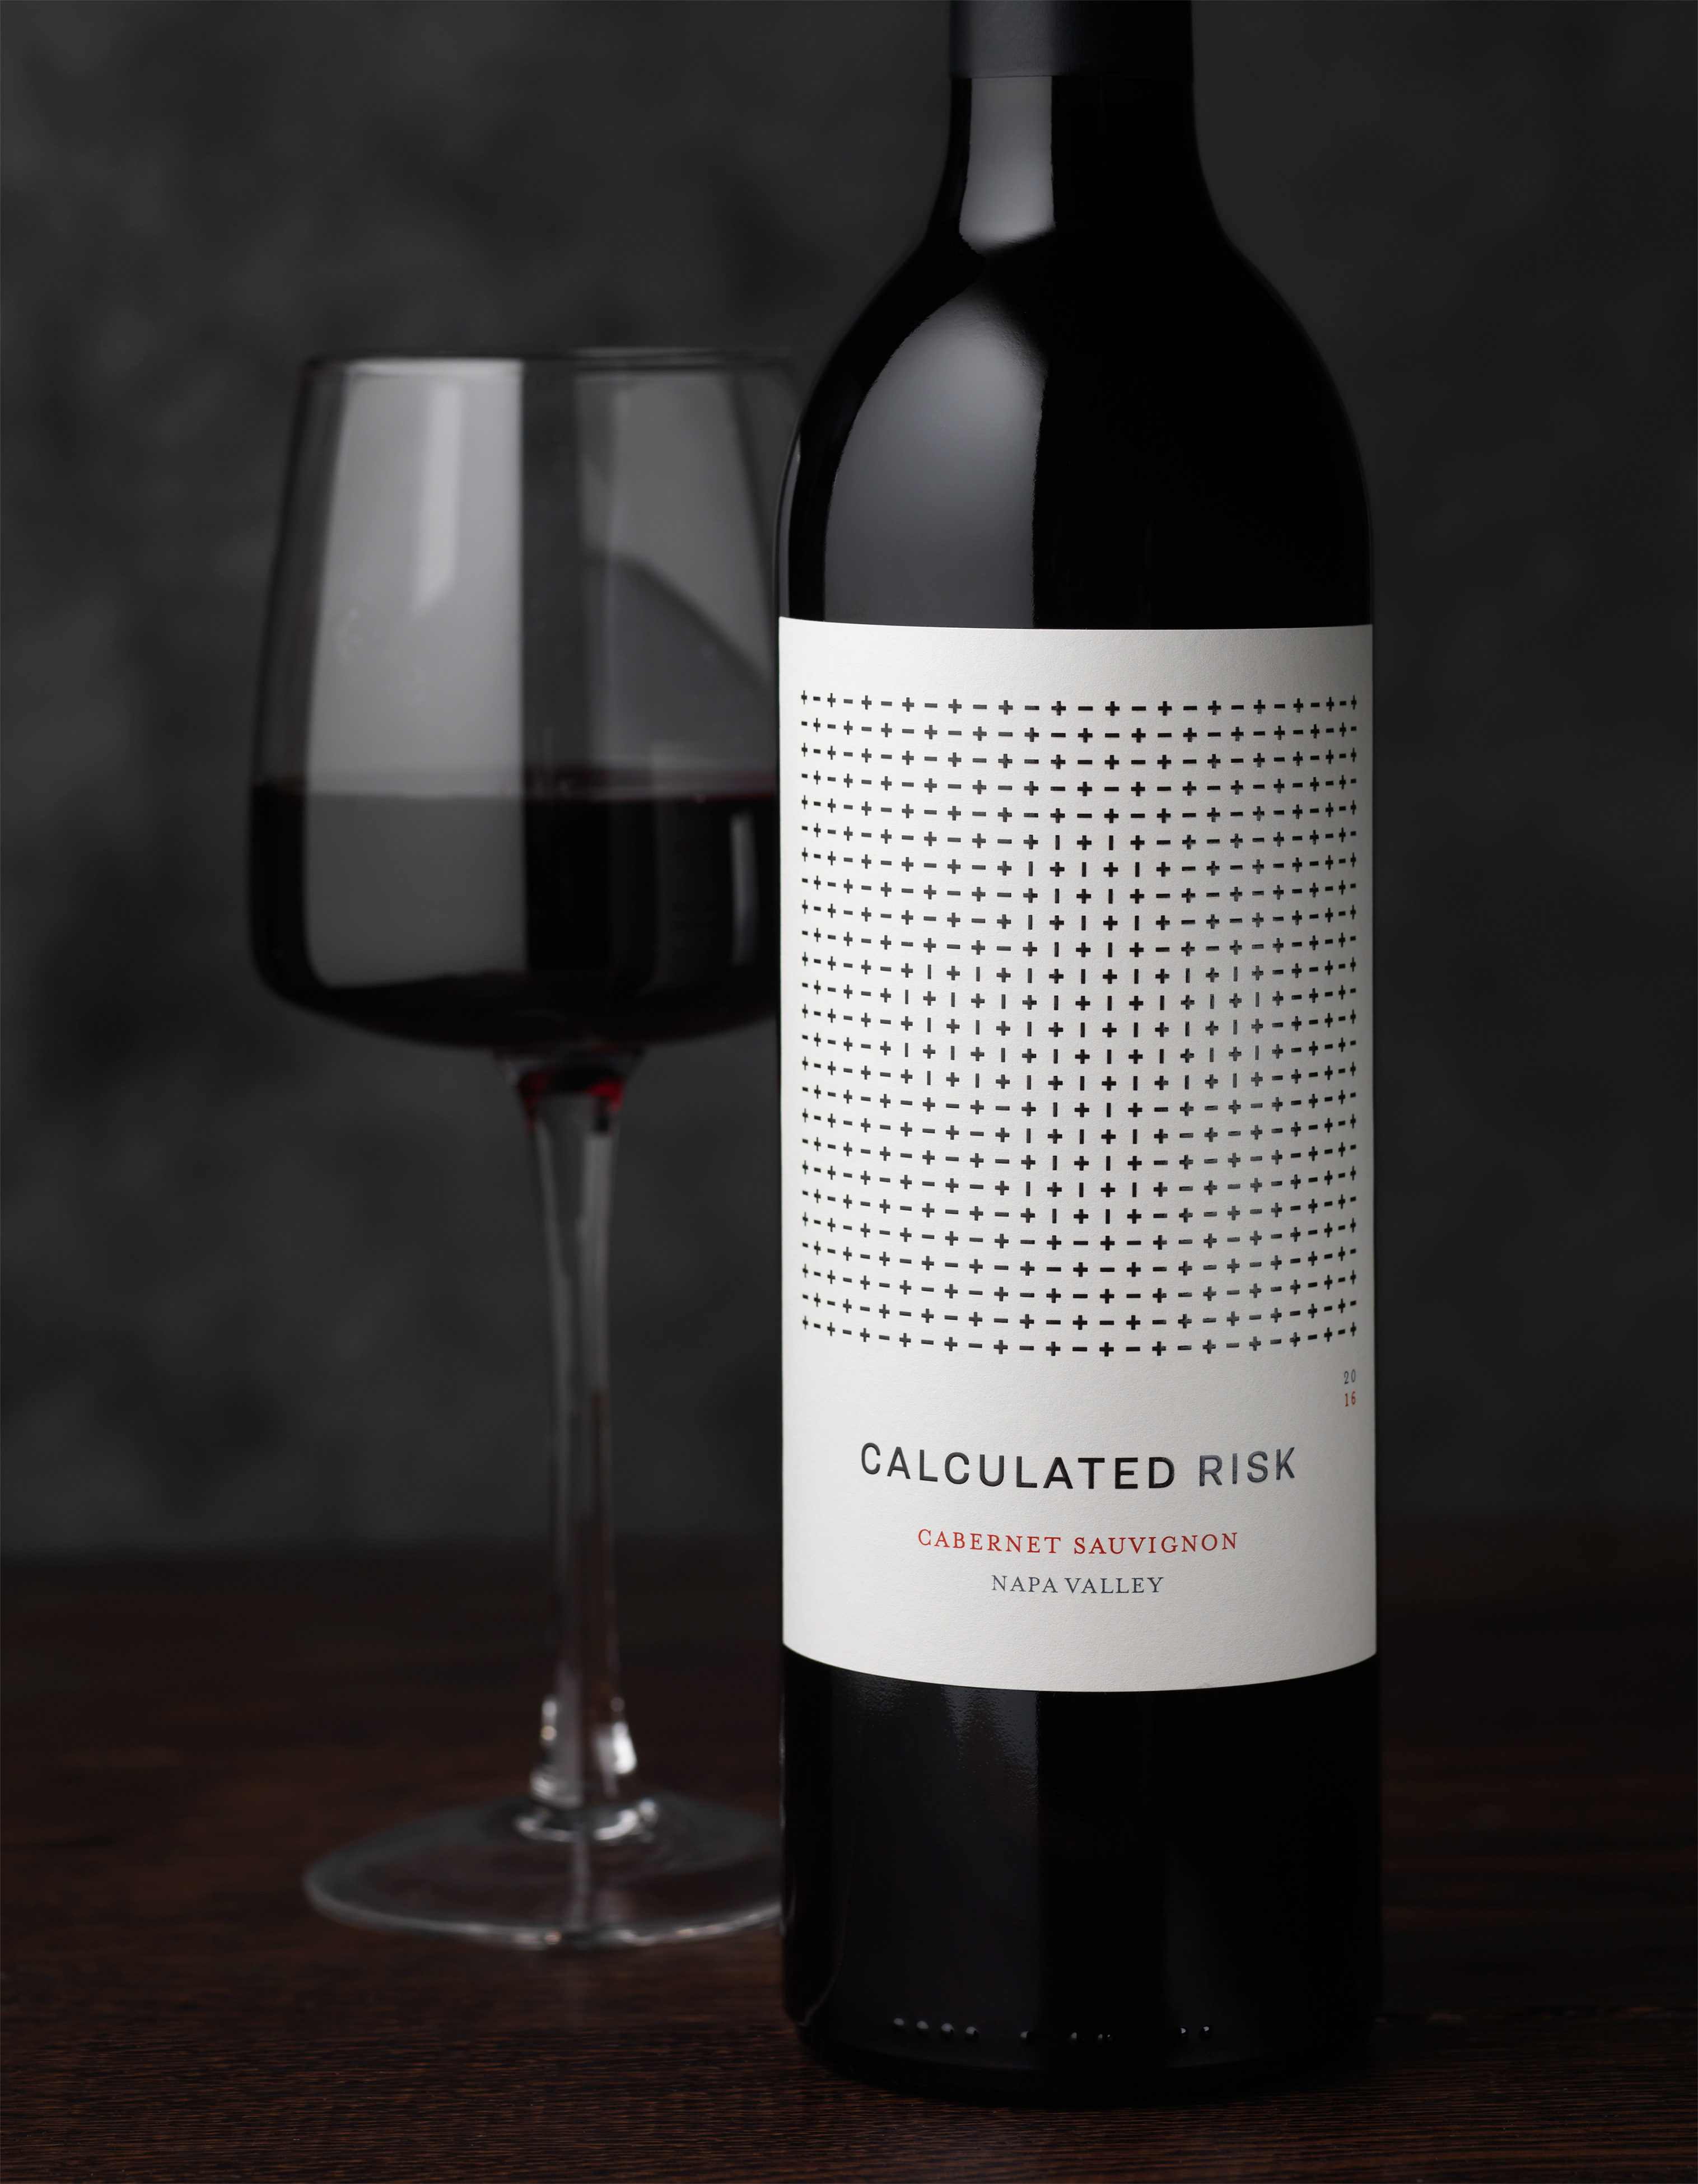 New Wine Brand Takes a Calculated Risk